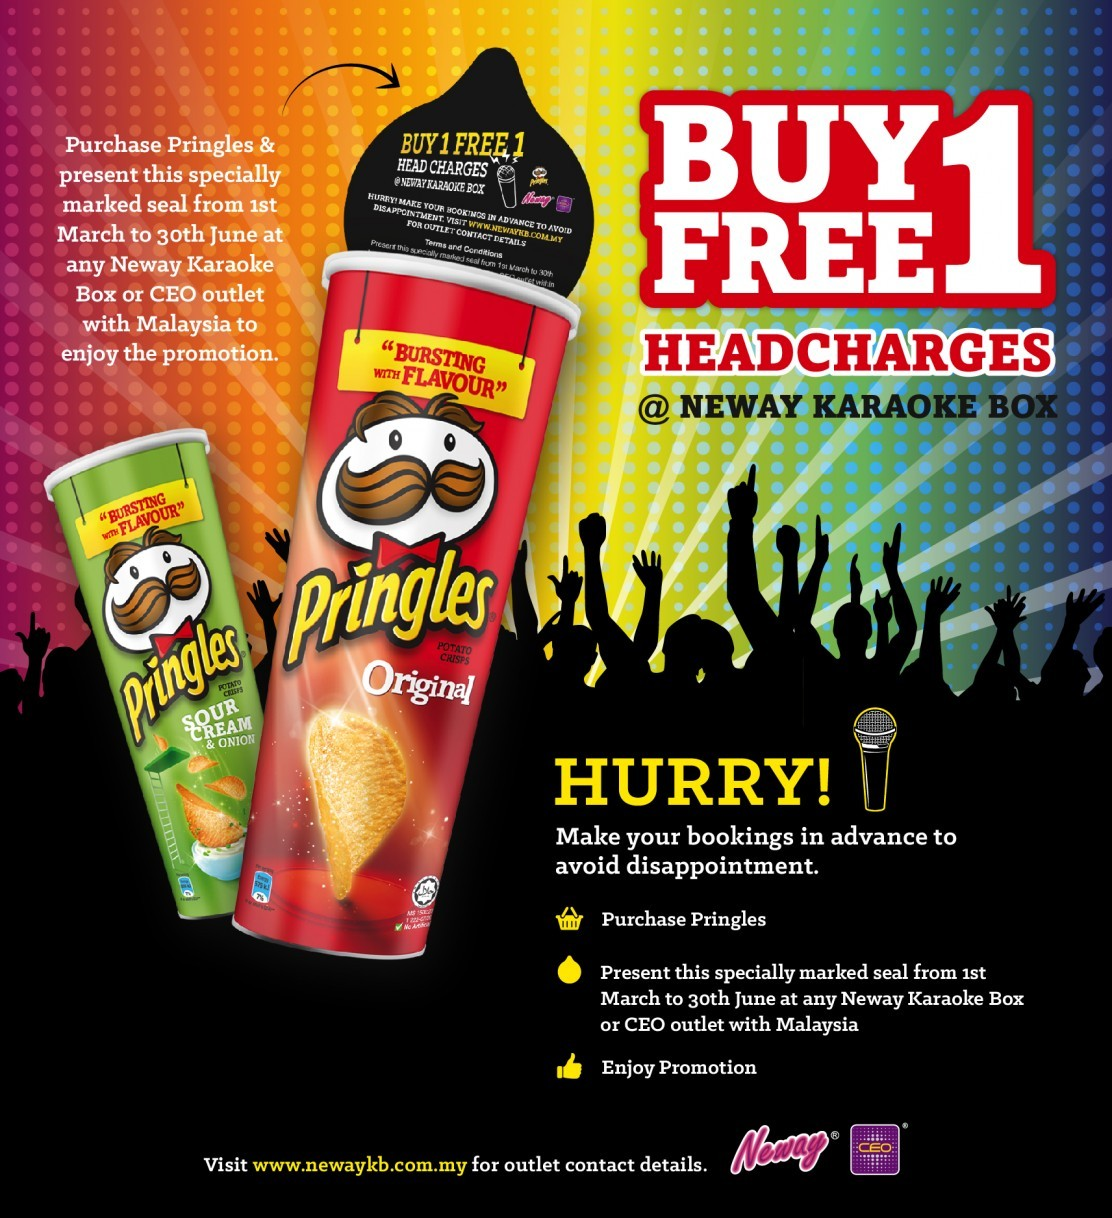 Neway Karaoke Box Buy 1 FREE 1